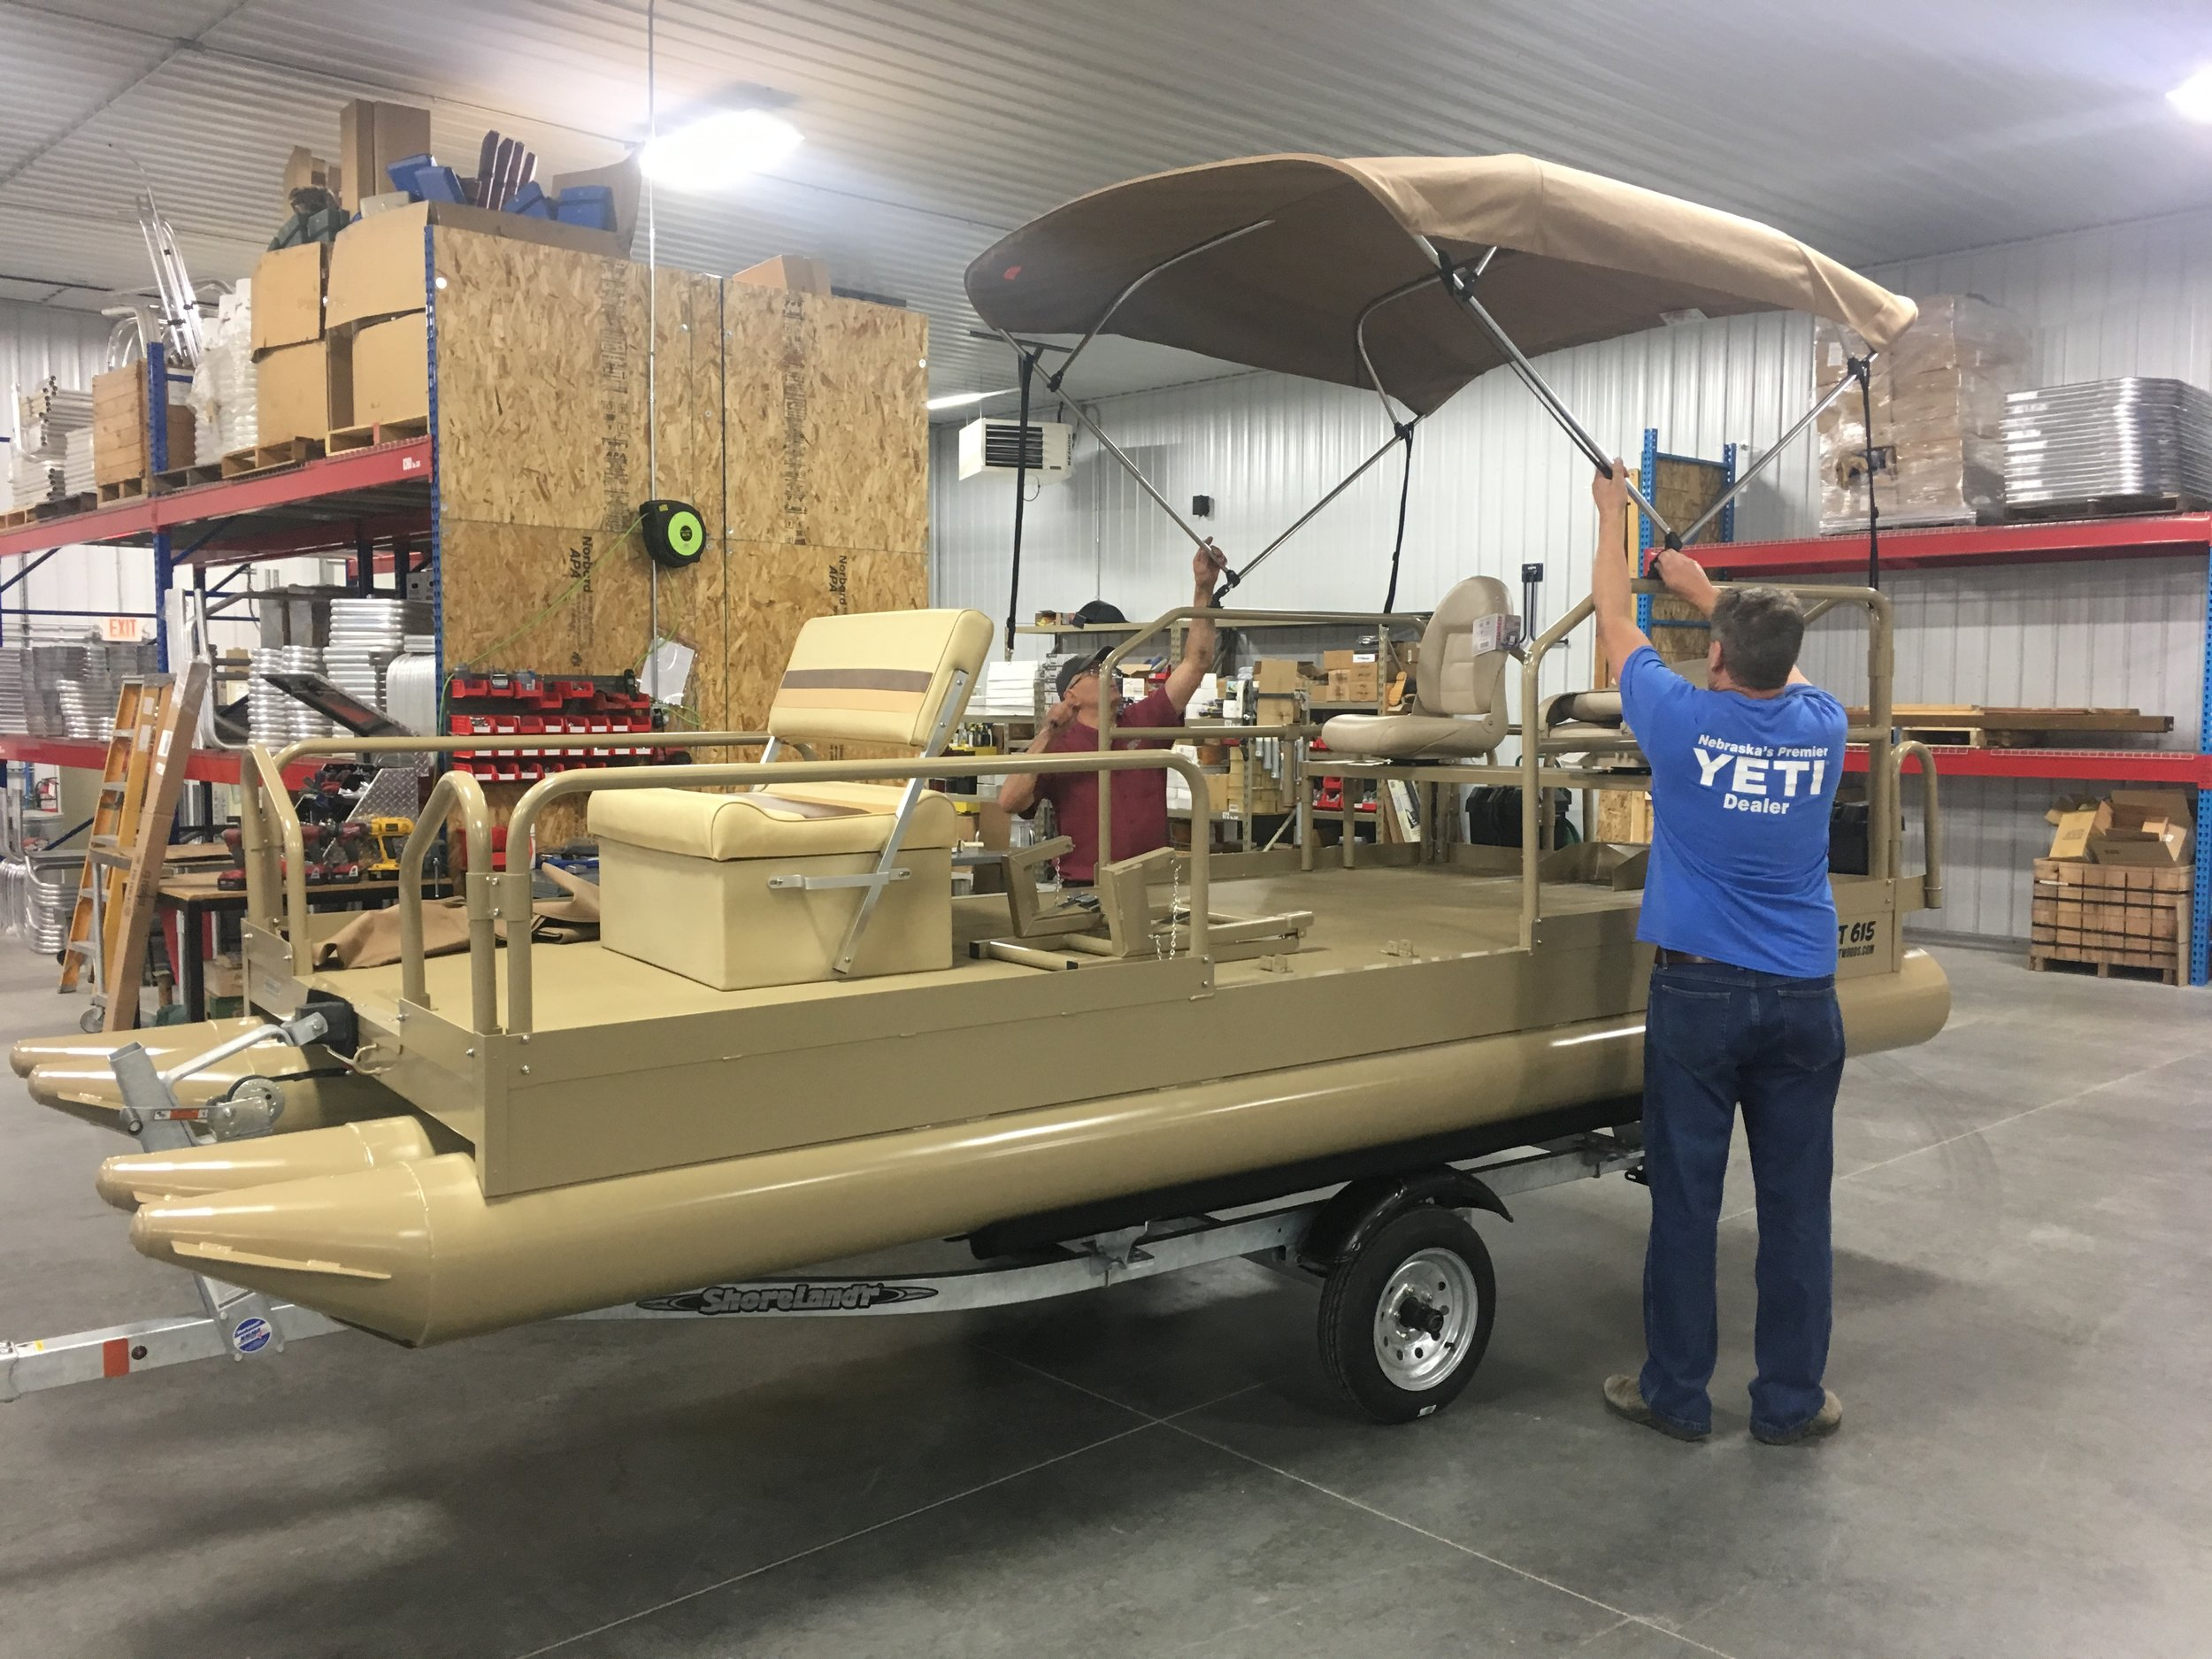 Setting up another tan Aluma Sport 615 for the customer for a pickup in our Grand Island facility. Our premium baked on powder coat paint makes a very nice option when ordering your boat.